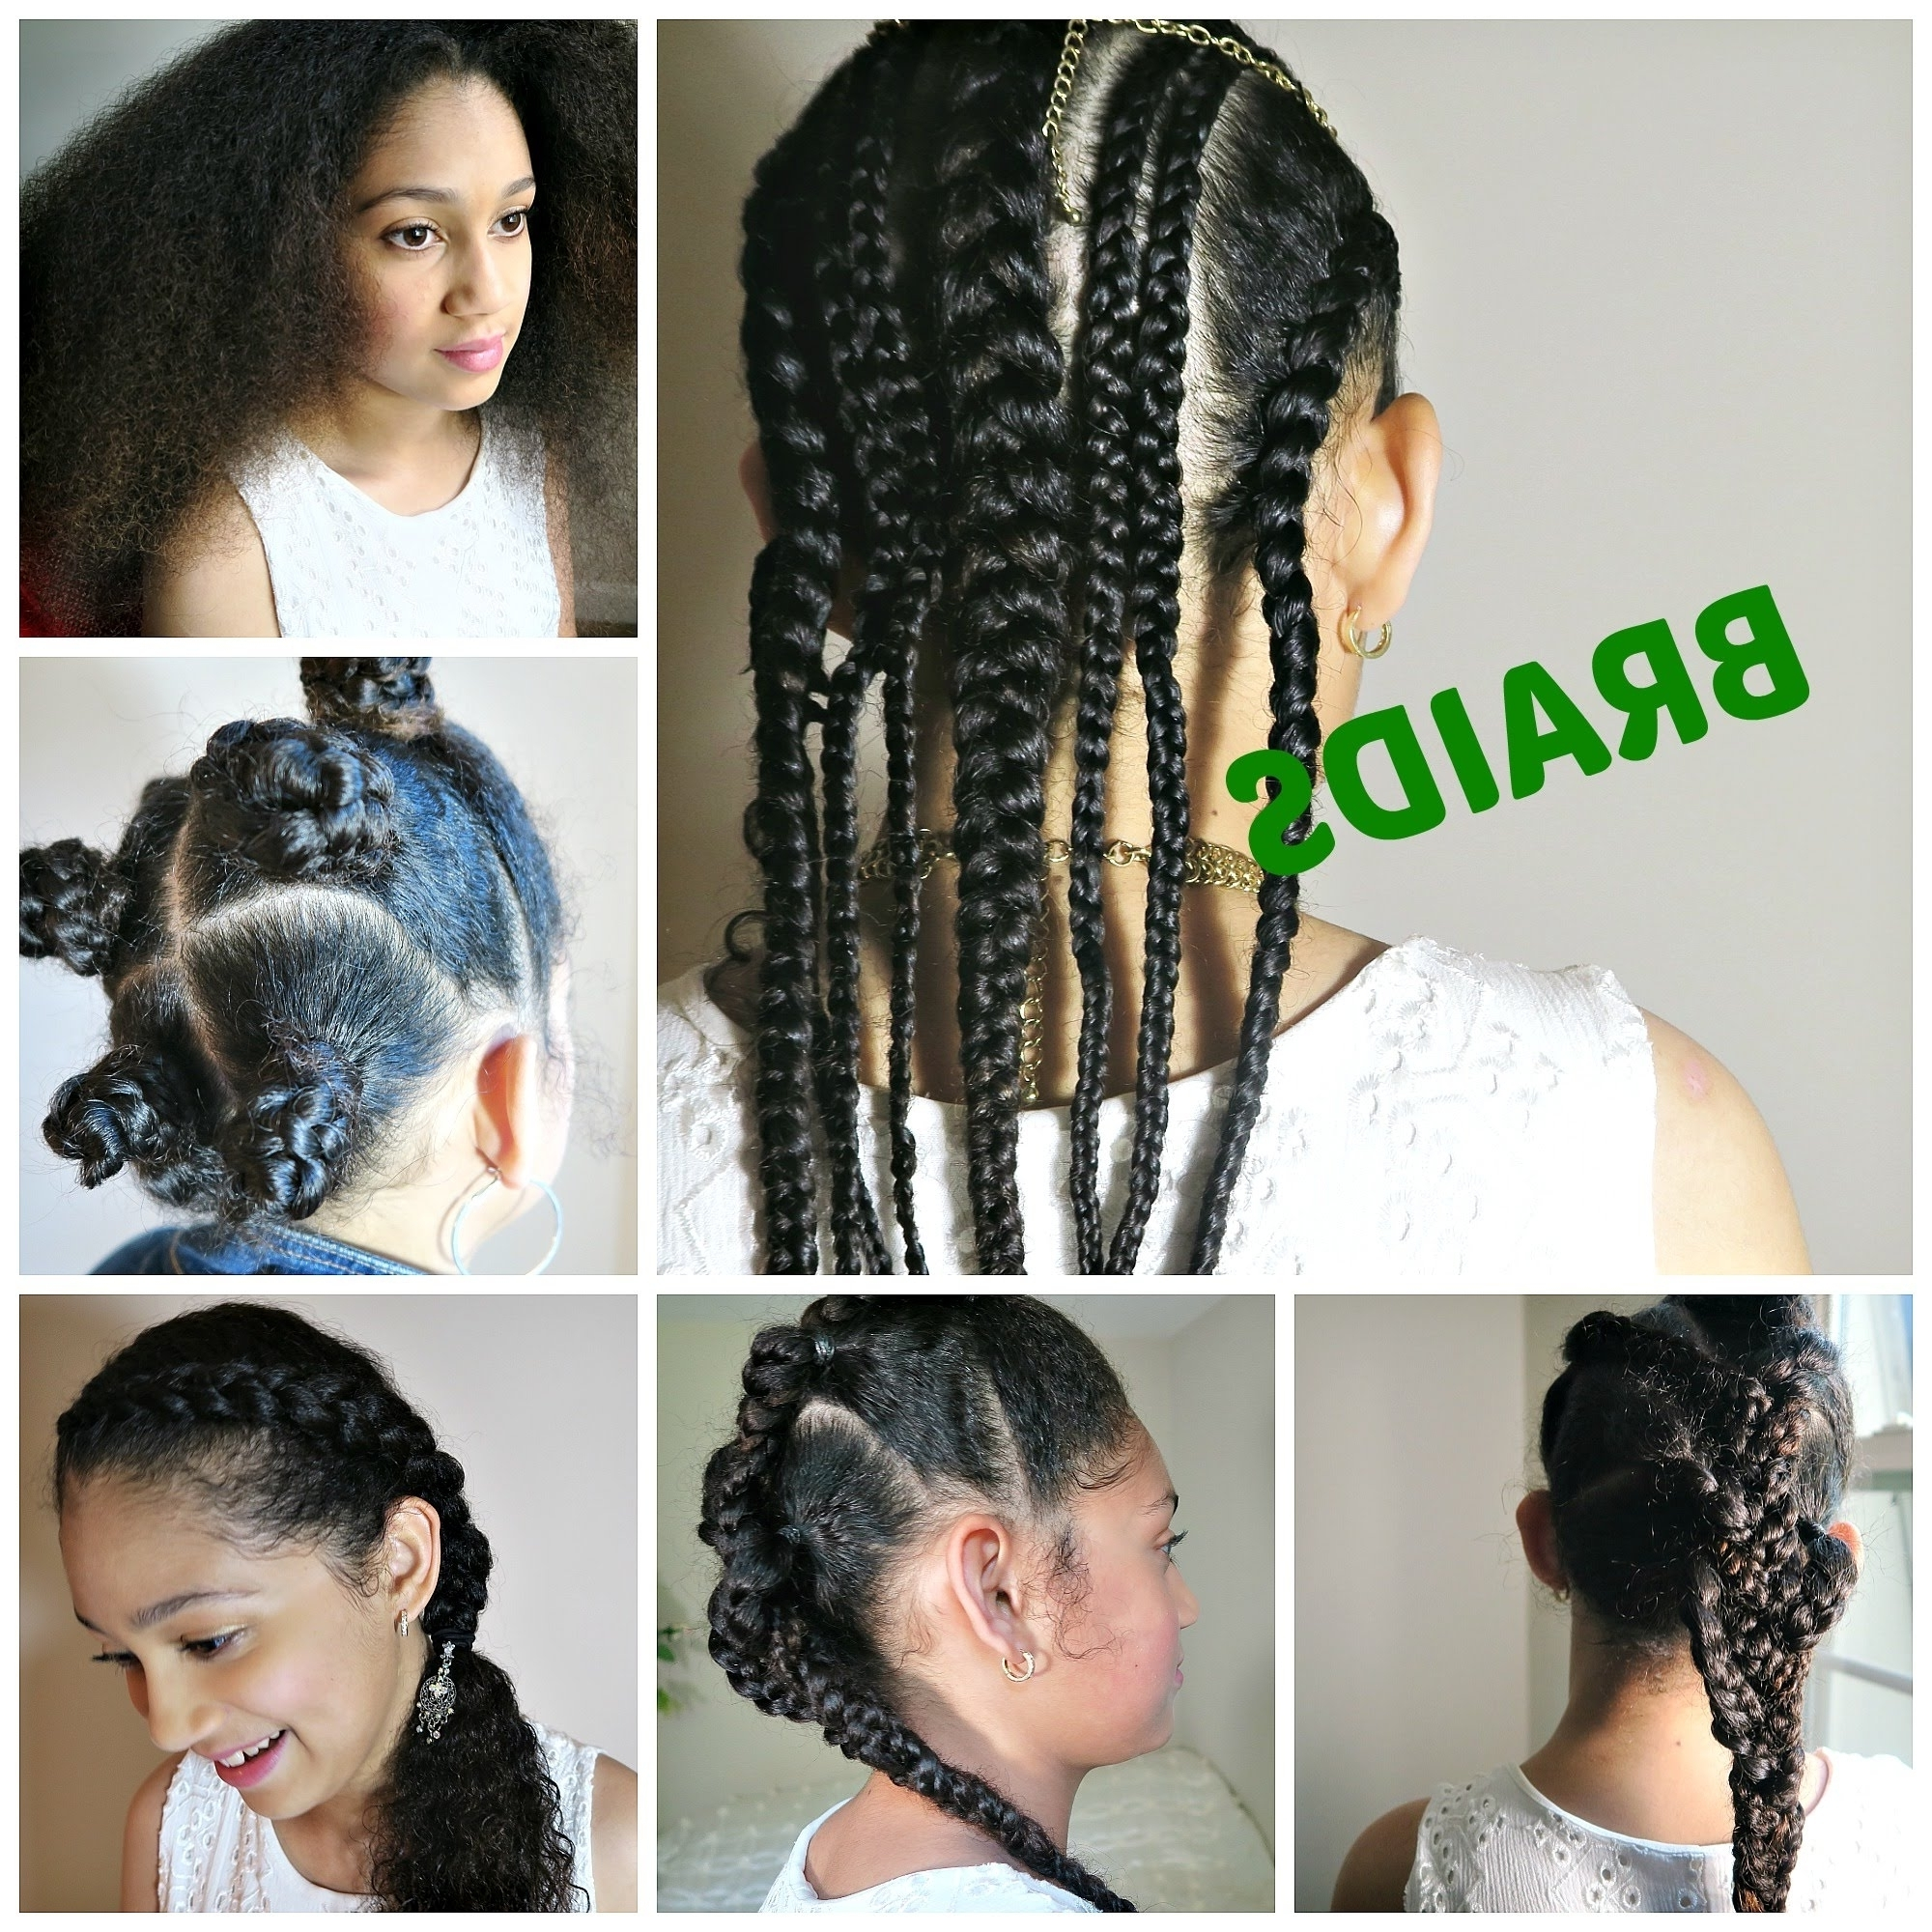 Braided Hairstyles For School 2018 – Braid Hairstyles 2018 Regarding Recent Entwining Braided Ponytail Hairstyles (View 4 of 20)